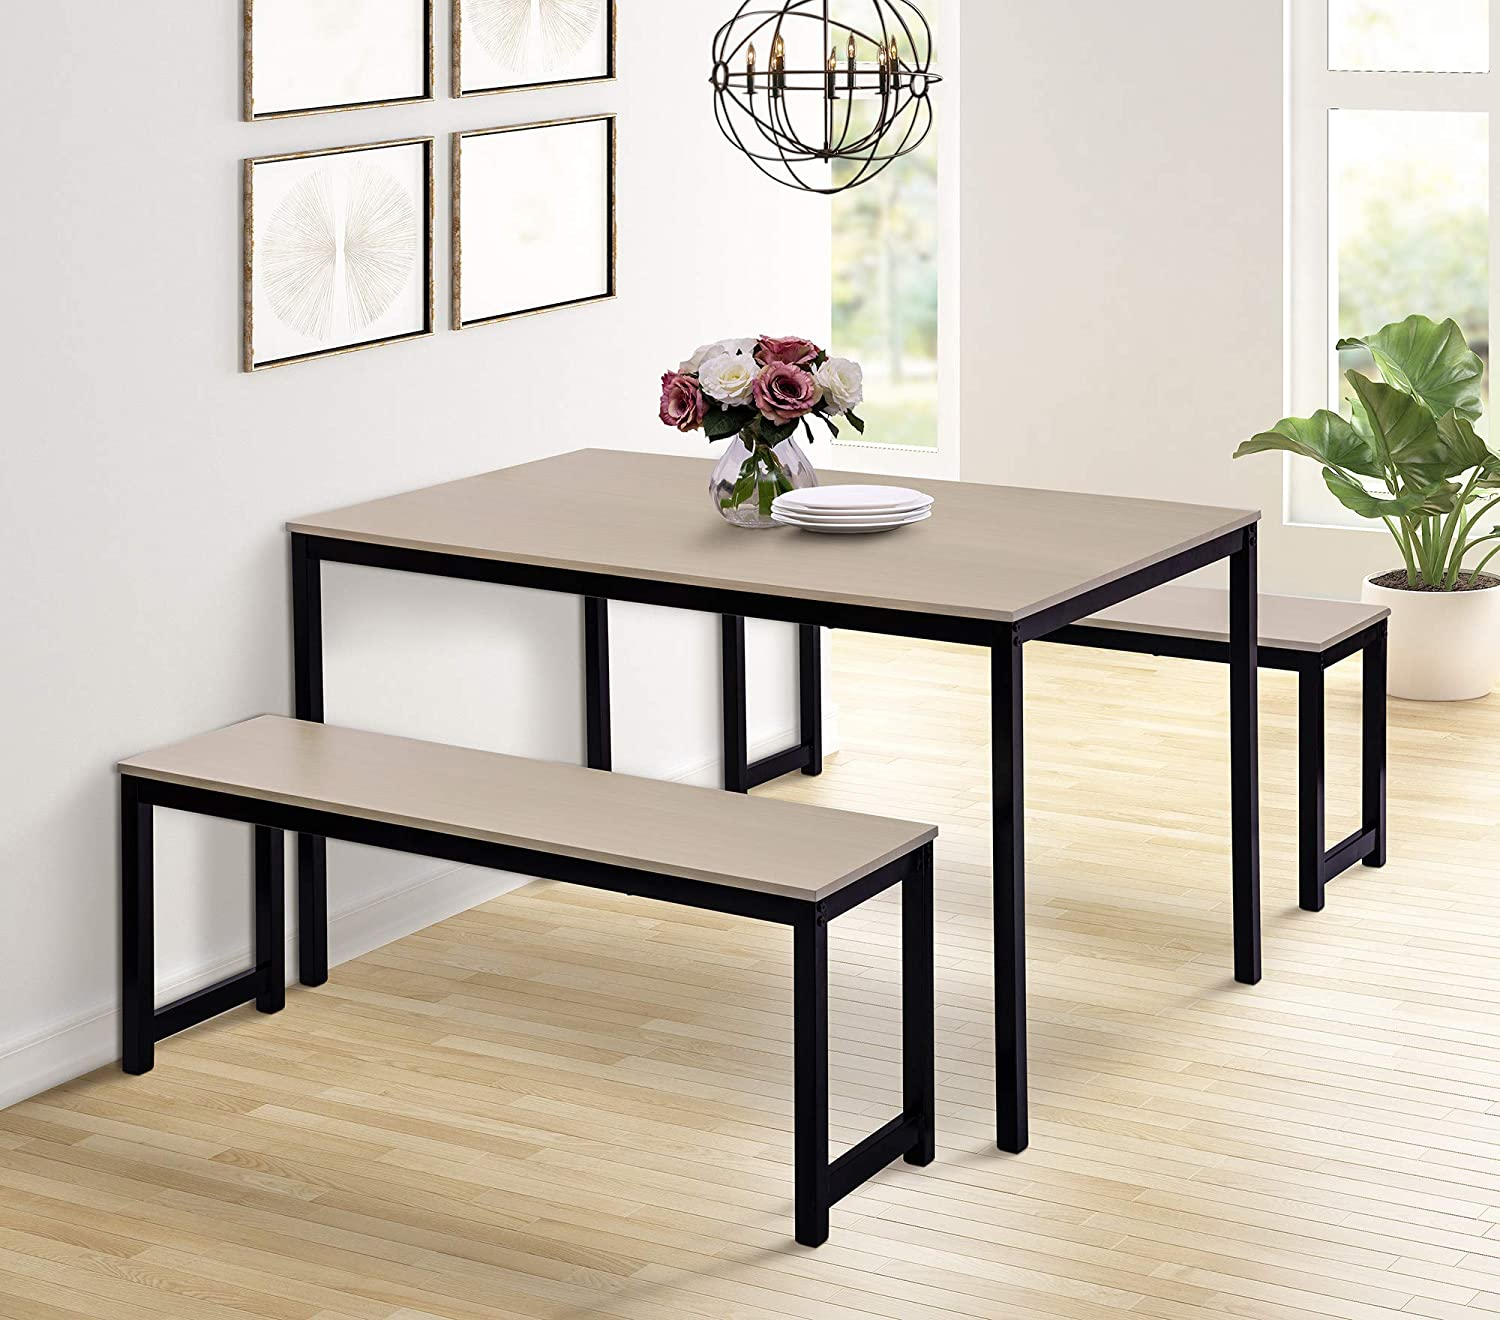 Dining Table Set Clearance SALE Limited time 35% OFF 3 Piece for 1 4-6 People